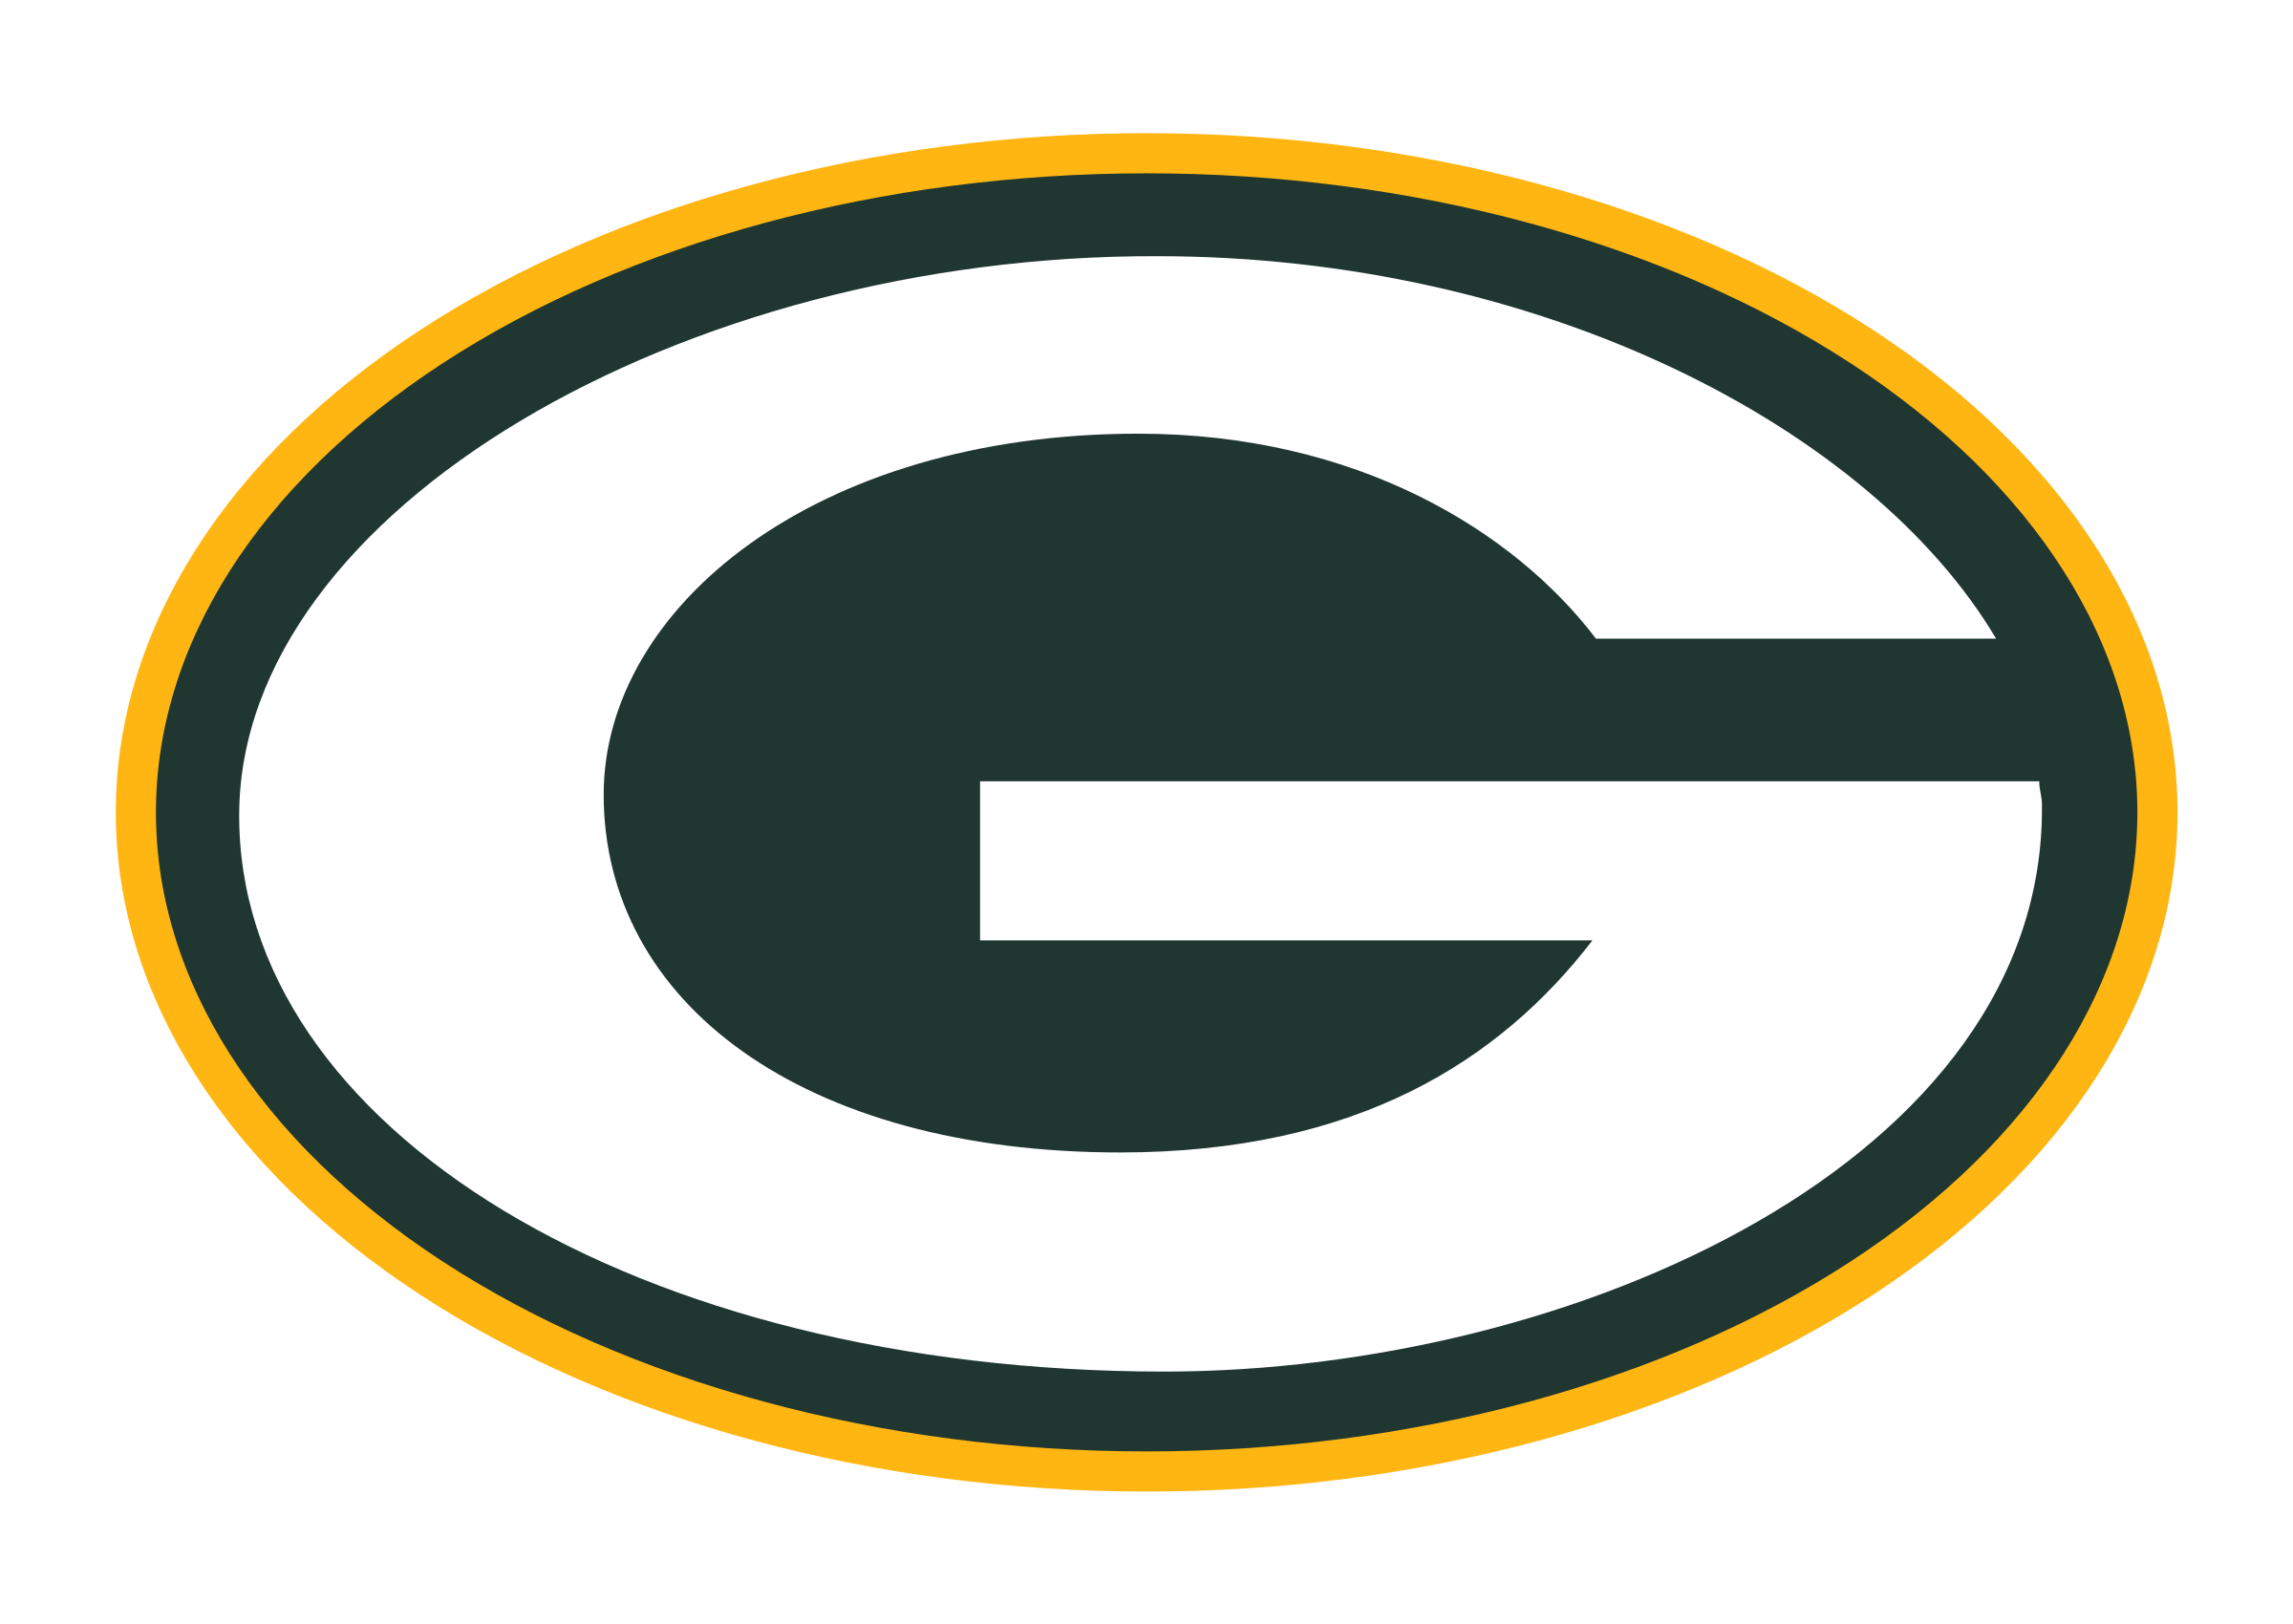 Green Bay Packers Logo Png Transparent Svg Vector Freebie Supply In 2020 Green Bay Packers Logo Green Bay Packers Crafts Green Bay Packers